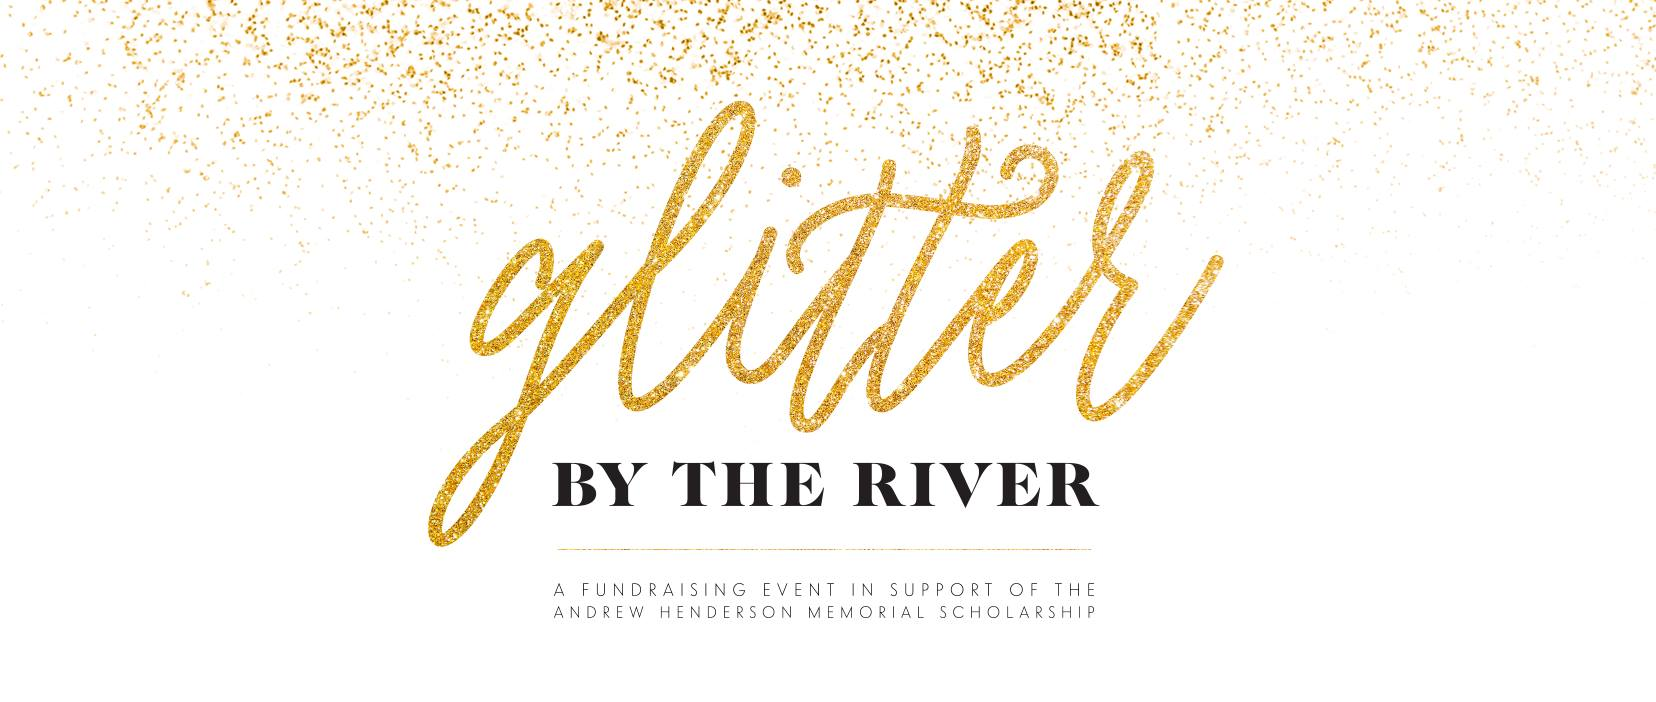 Glitter by the River event